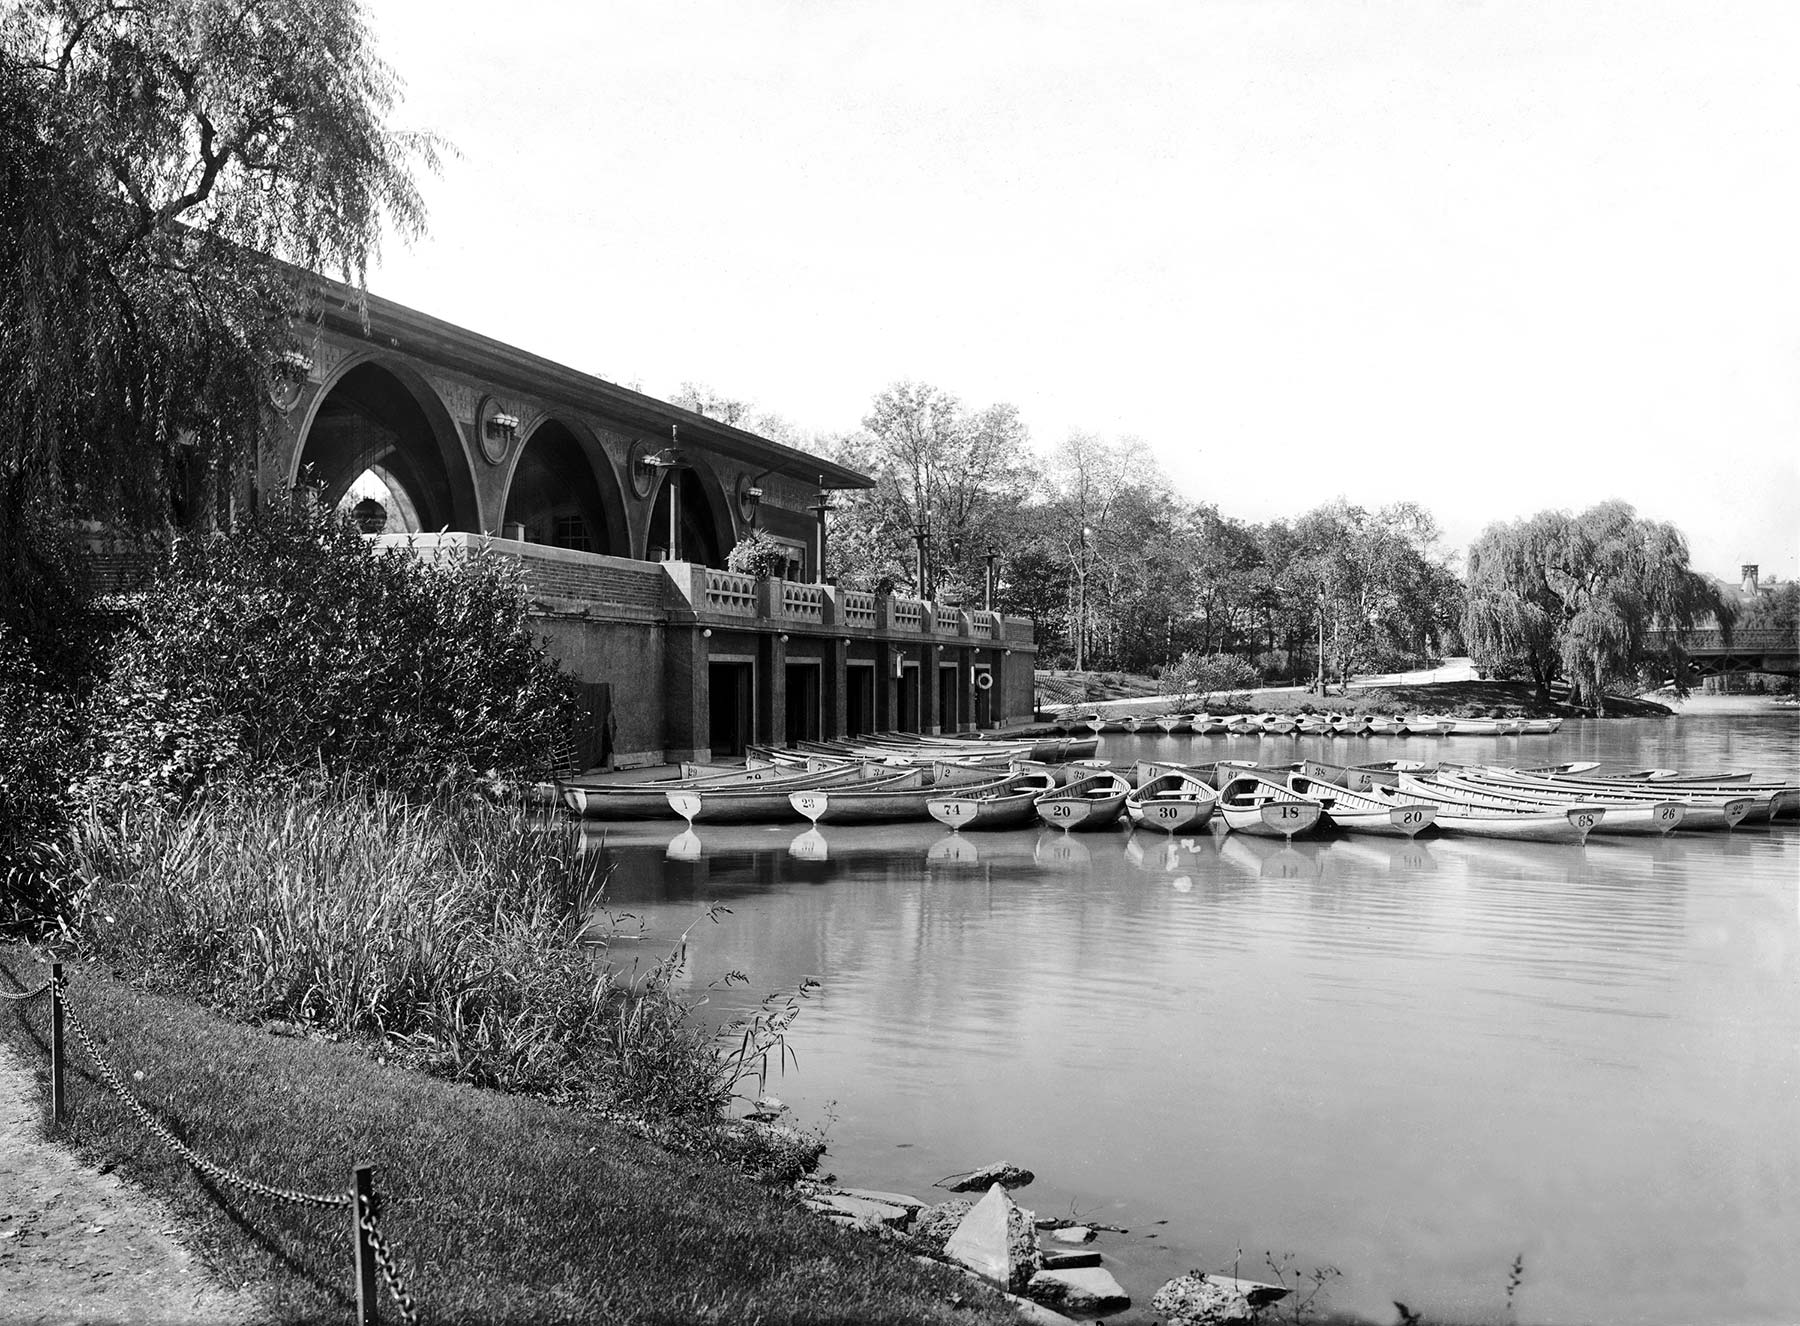 Humboldt Park Boat House, ca. 1915. Chicago Park District Records: Photographs, Special Collections, Chicago Public Library.